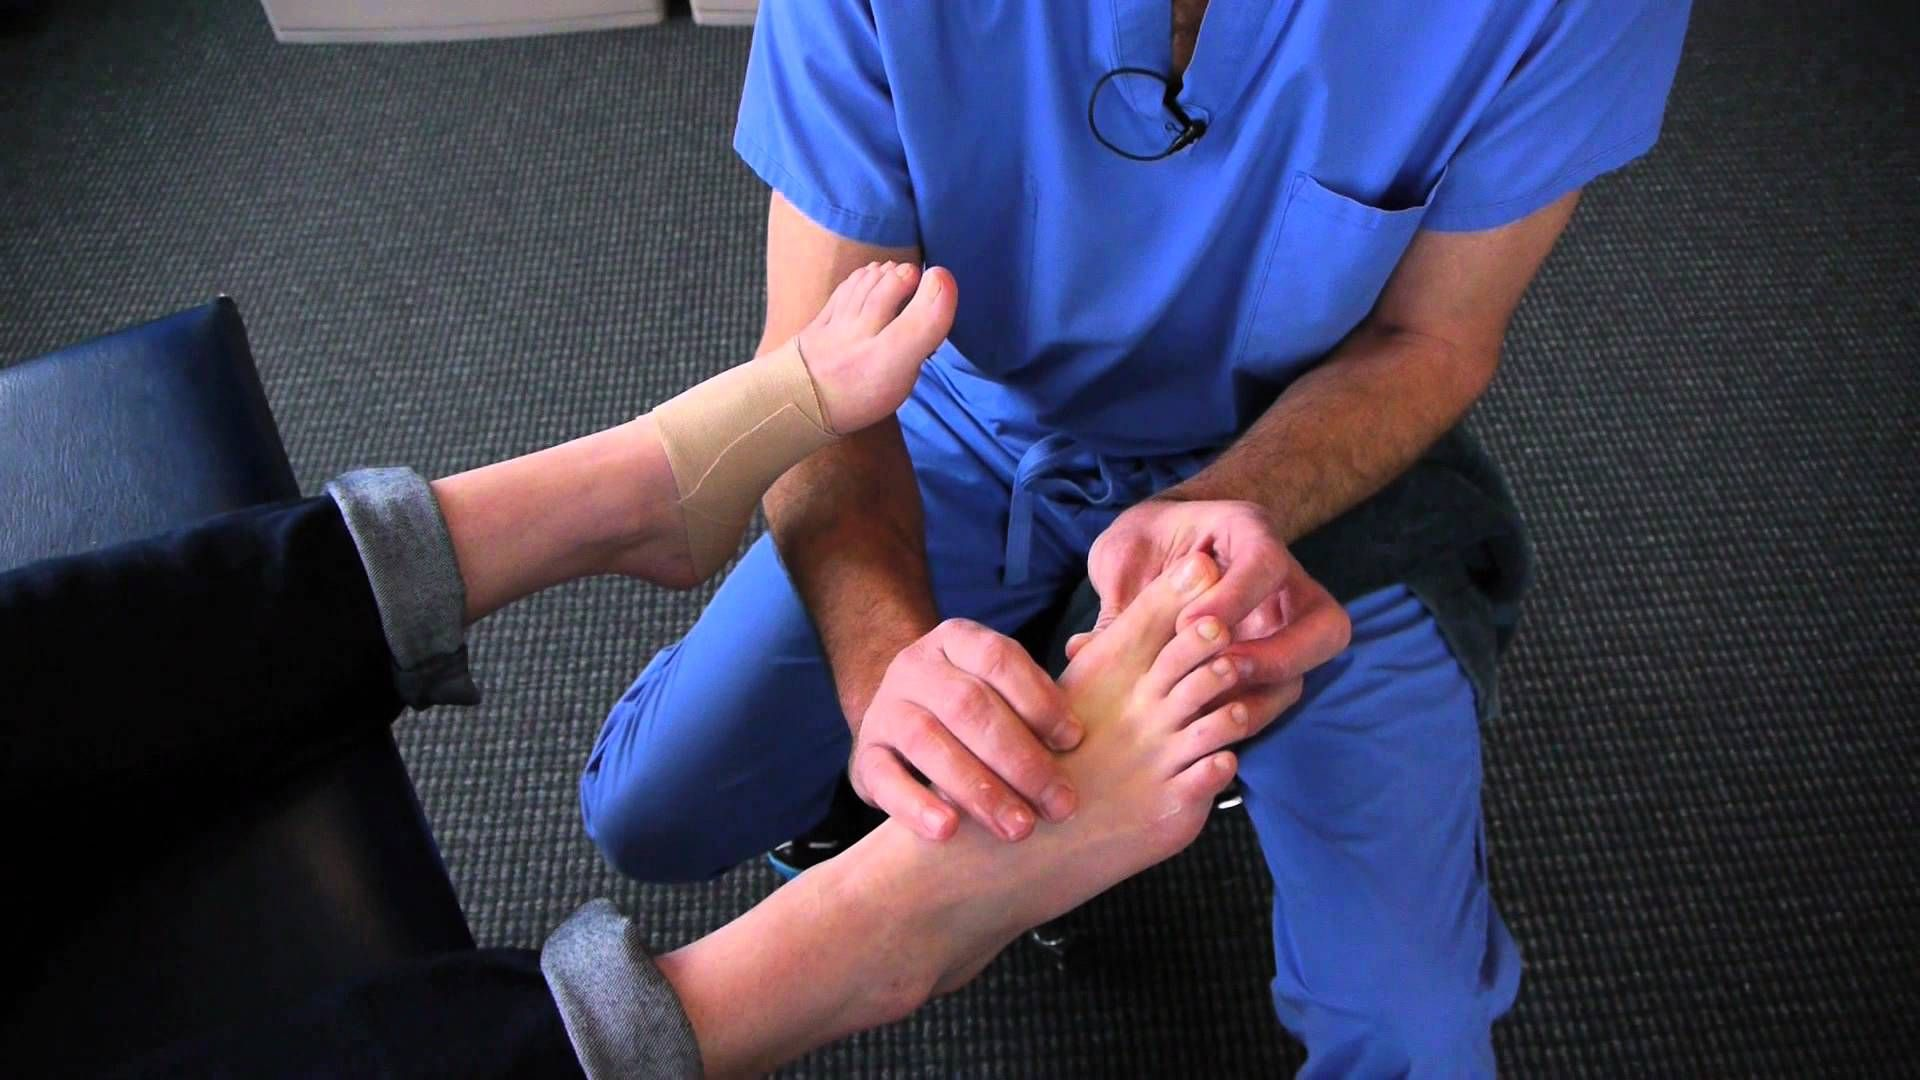 Dr ray mcclanahan shares a useful manual technique for